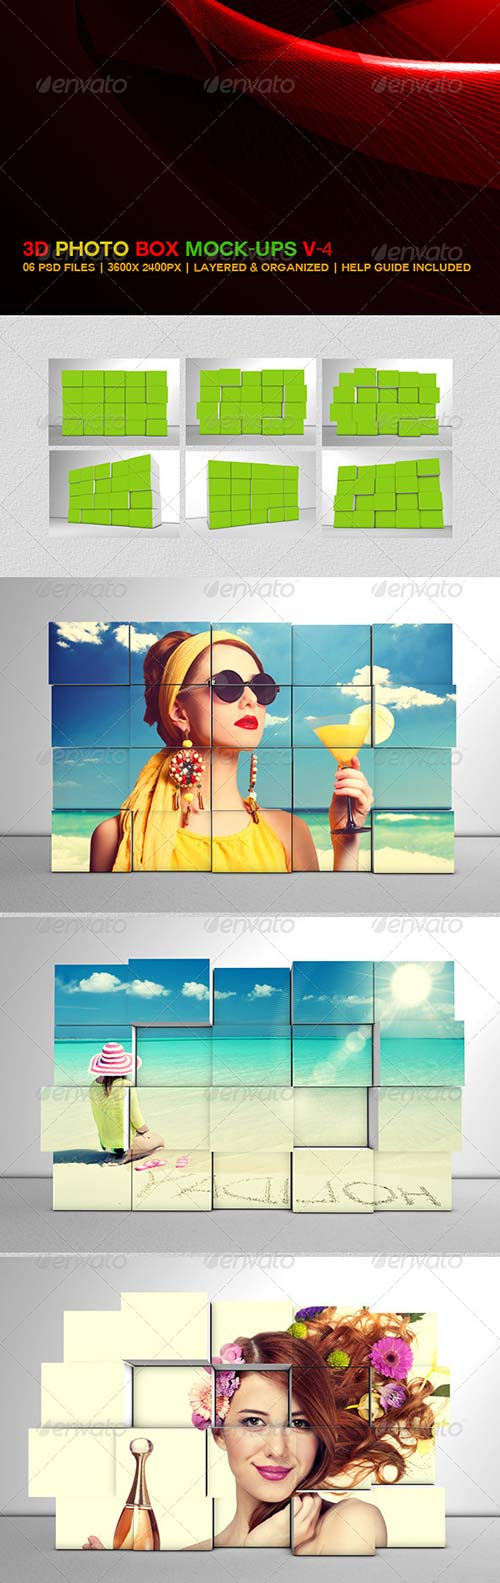 GraphicRiver 3D Photo Box Mockups V-4